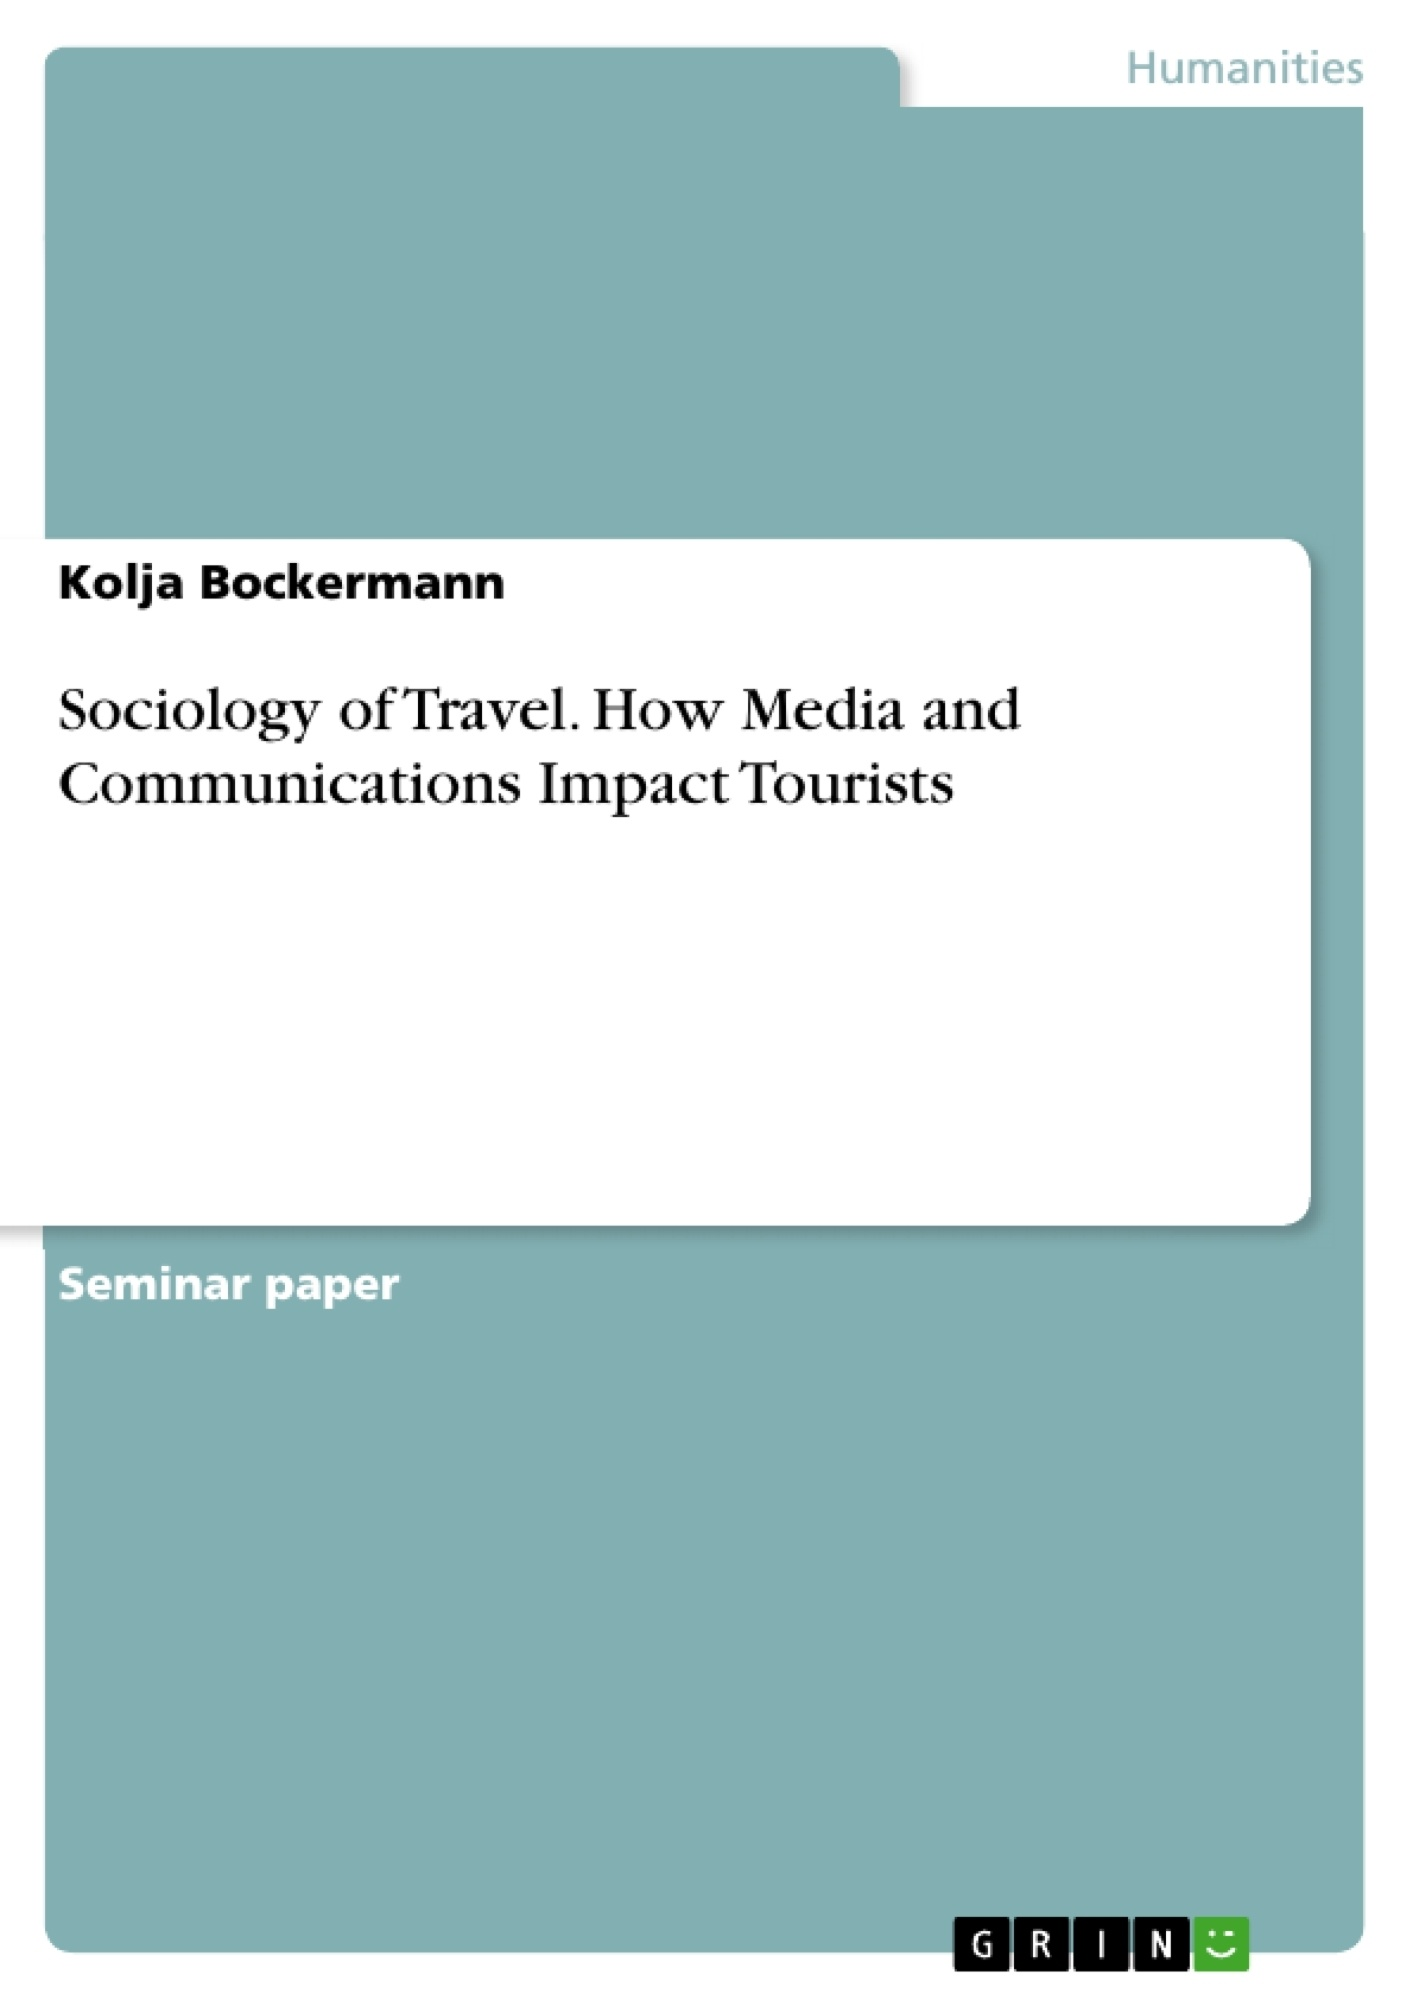 Title: Sociology of Travel. How Media and Communications Impact Tourists